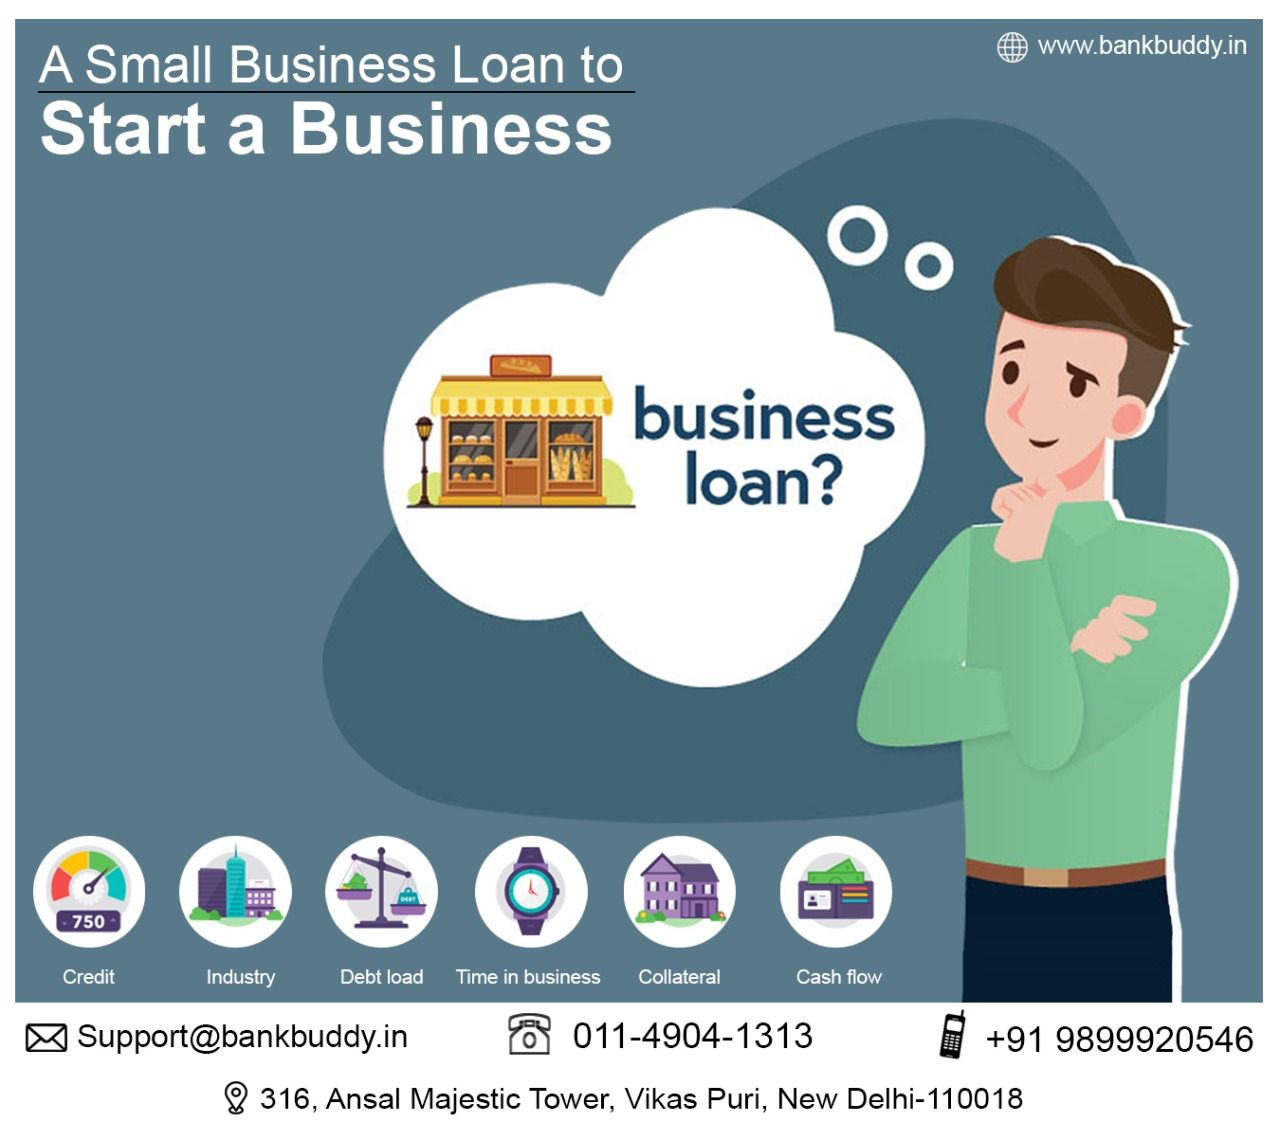 A Small Business Loan To Start A Business Small Business Loans Business Loans Starting A Business